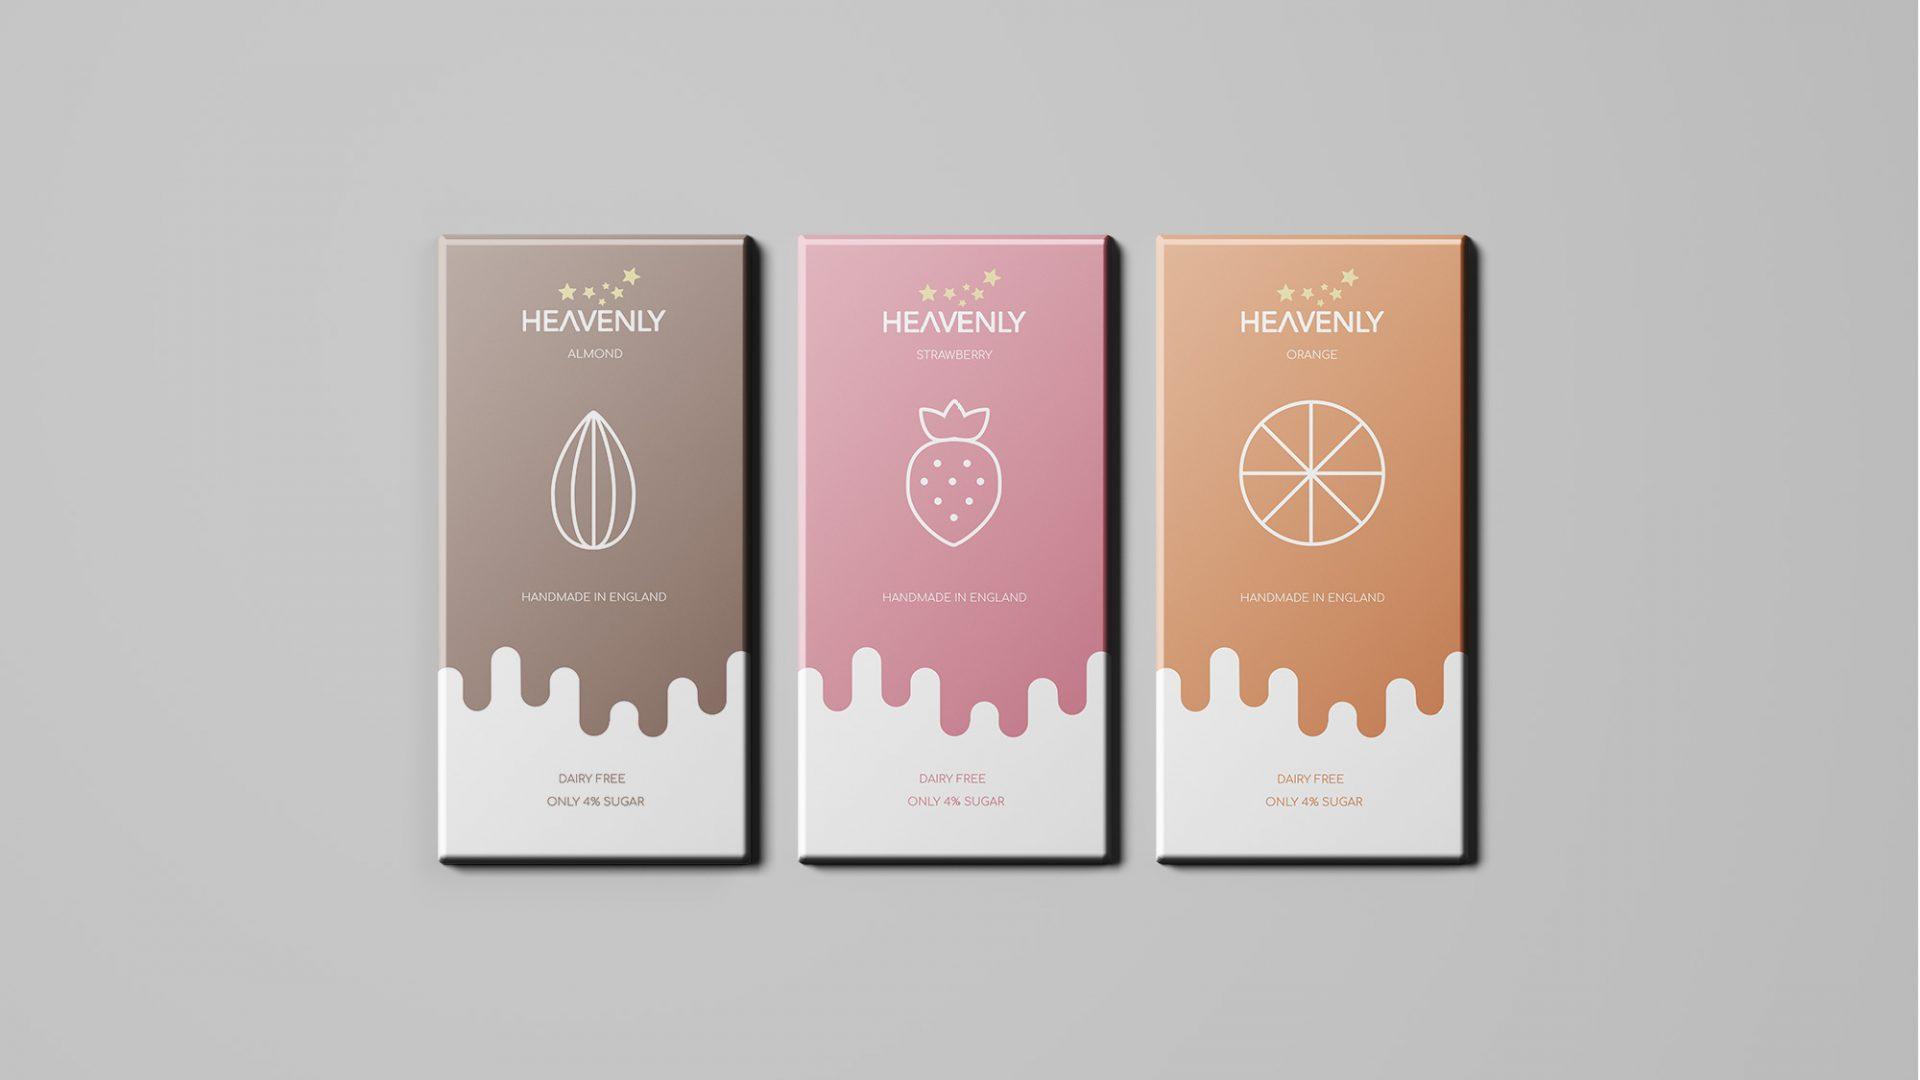 Heavenly_Chocolate_bar_design